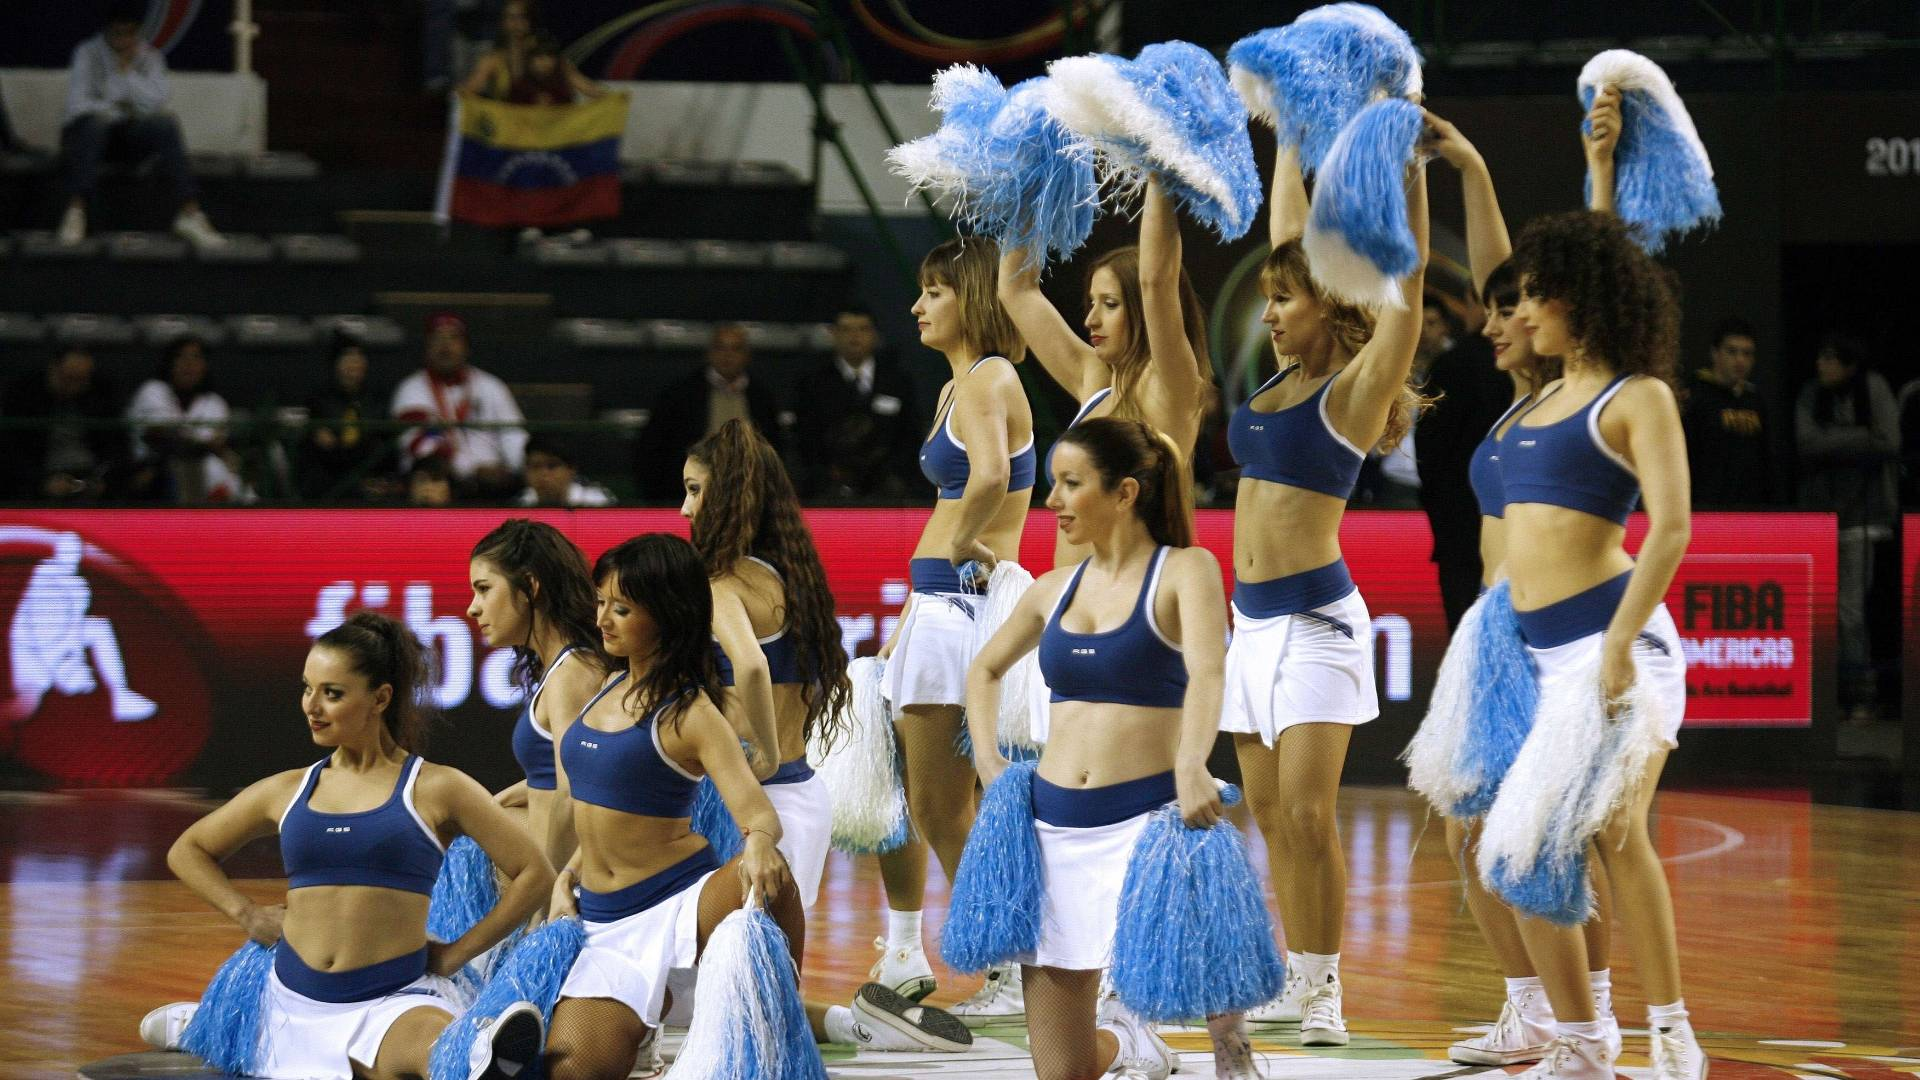 Cheerleaders animam os intervalos dos jogos de basquete no Pr-Olmpico masculino em Mar del Plata